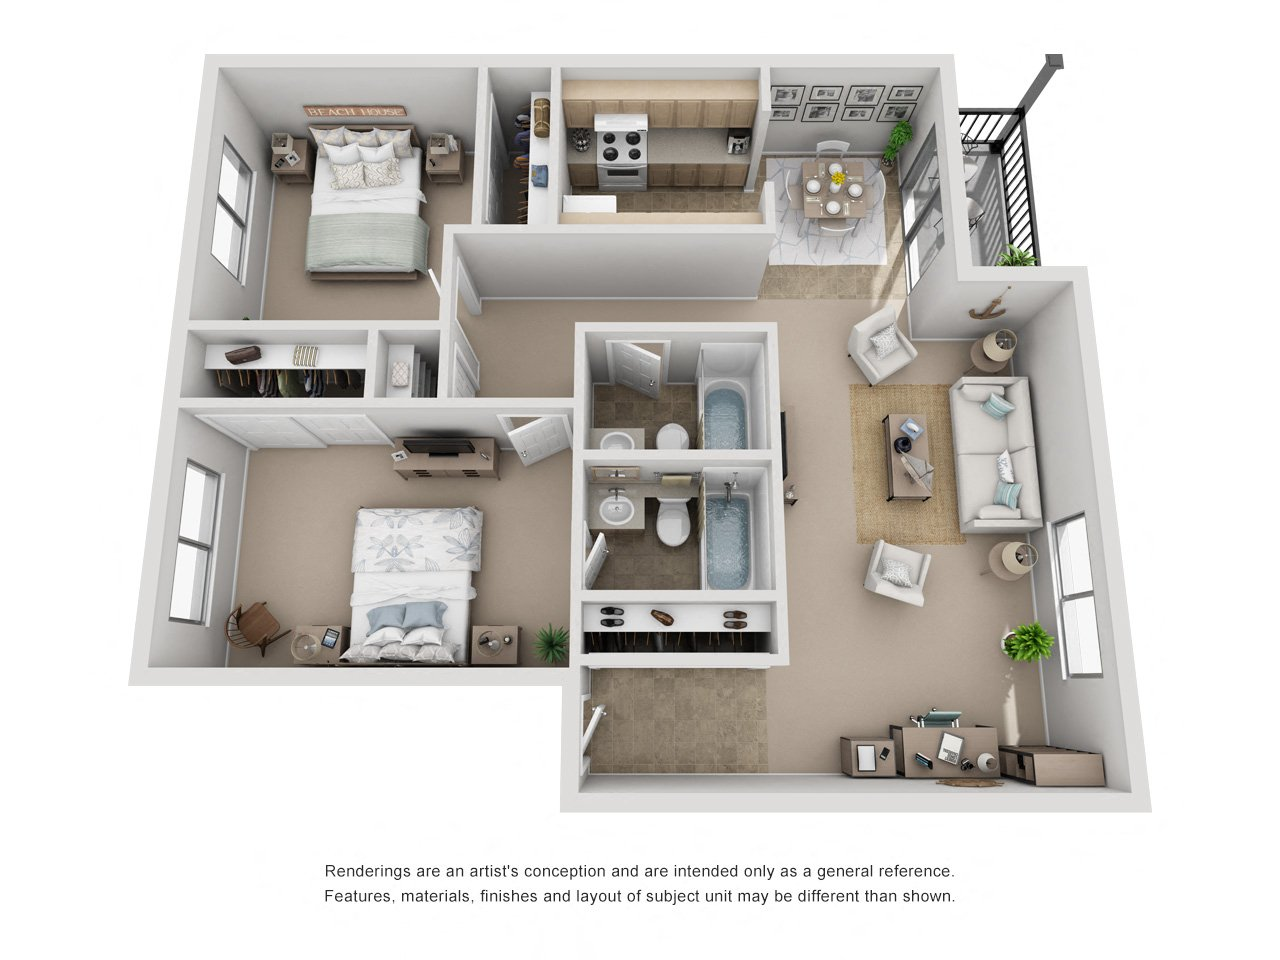 Spacious 1 2 and 3 bedroom apartments in lakewood co - One bedroom apartments lakewood co ...